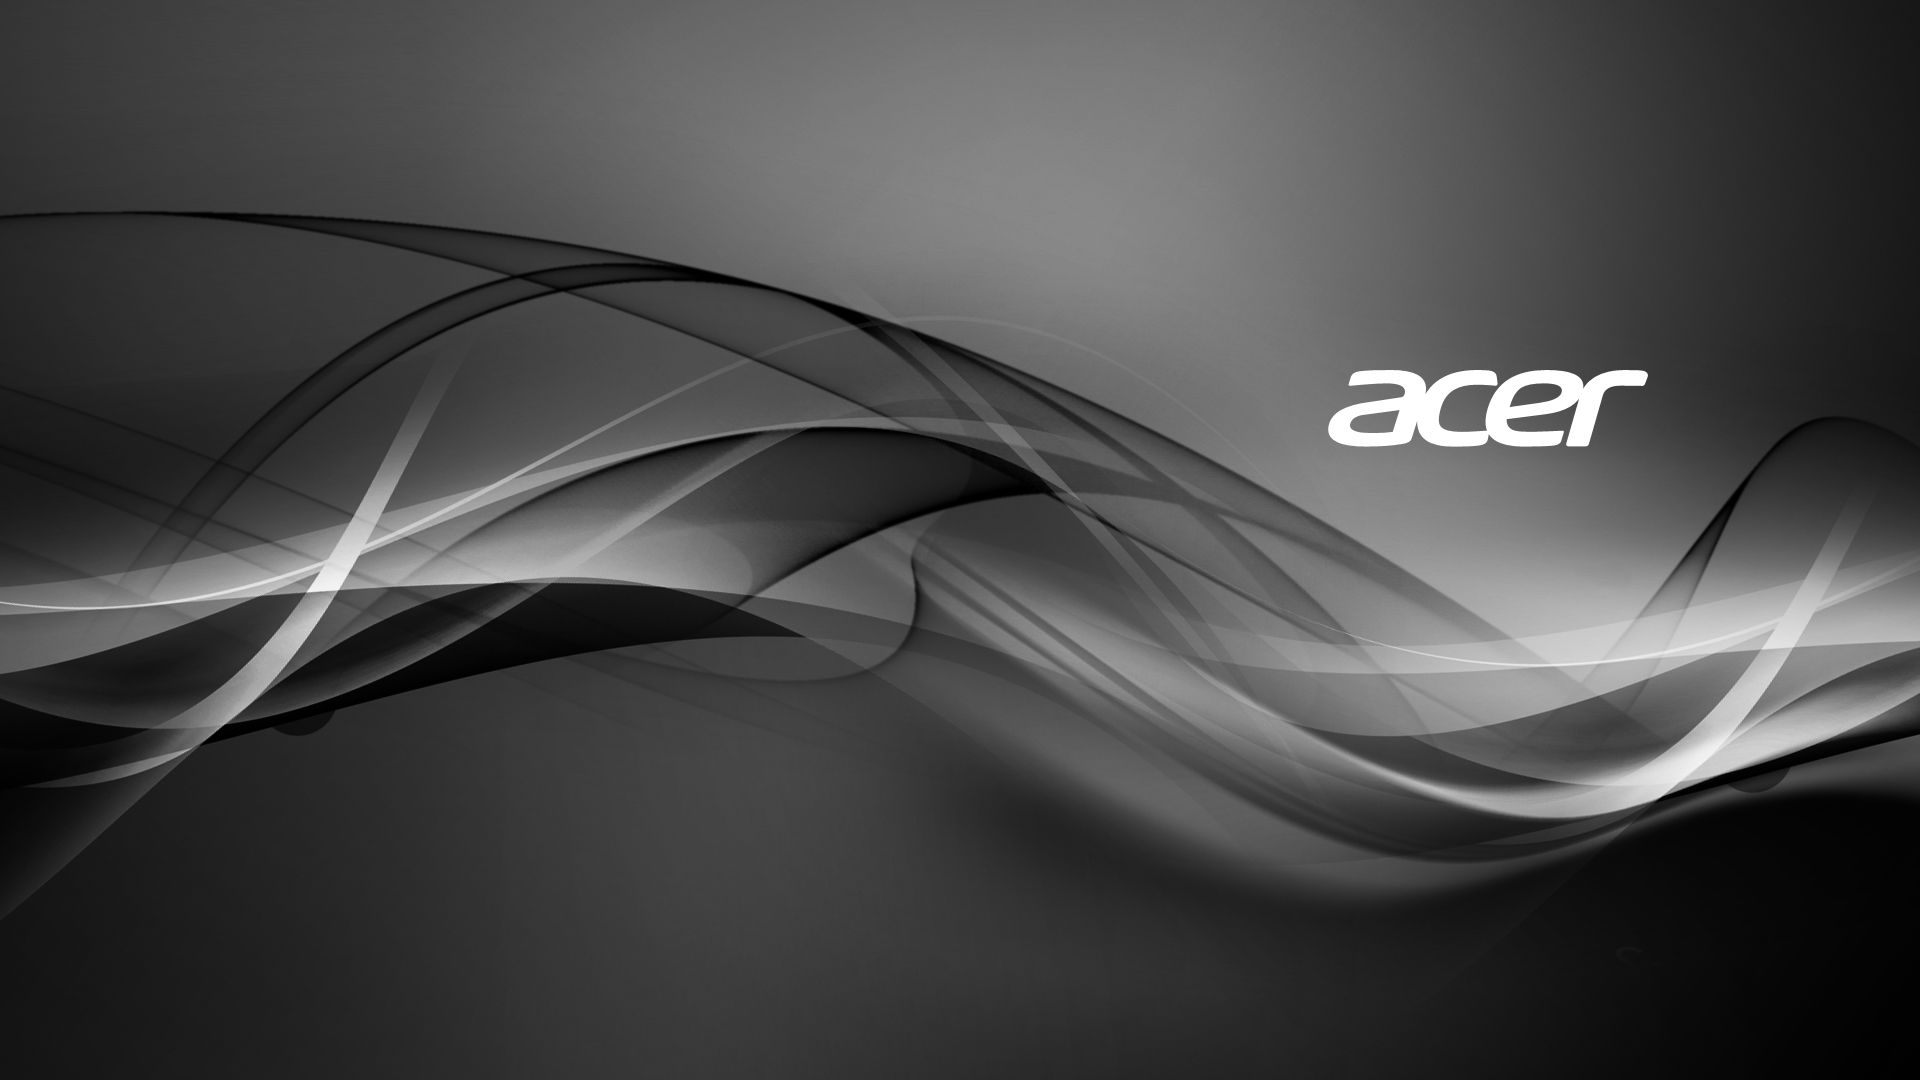 Wallpaper Acer Windows 10